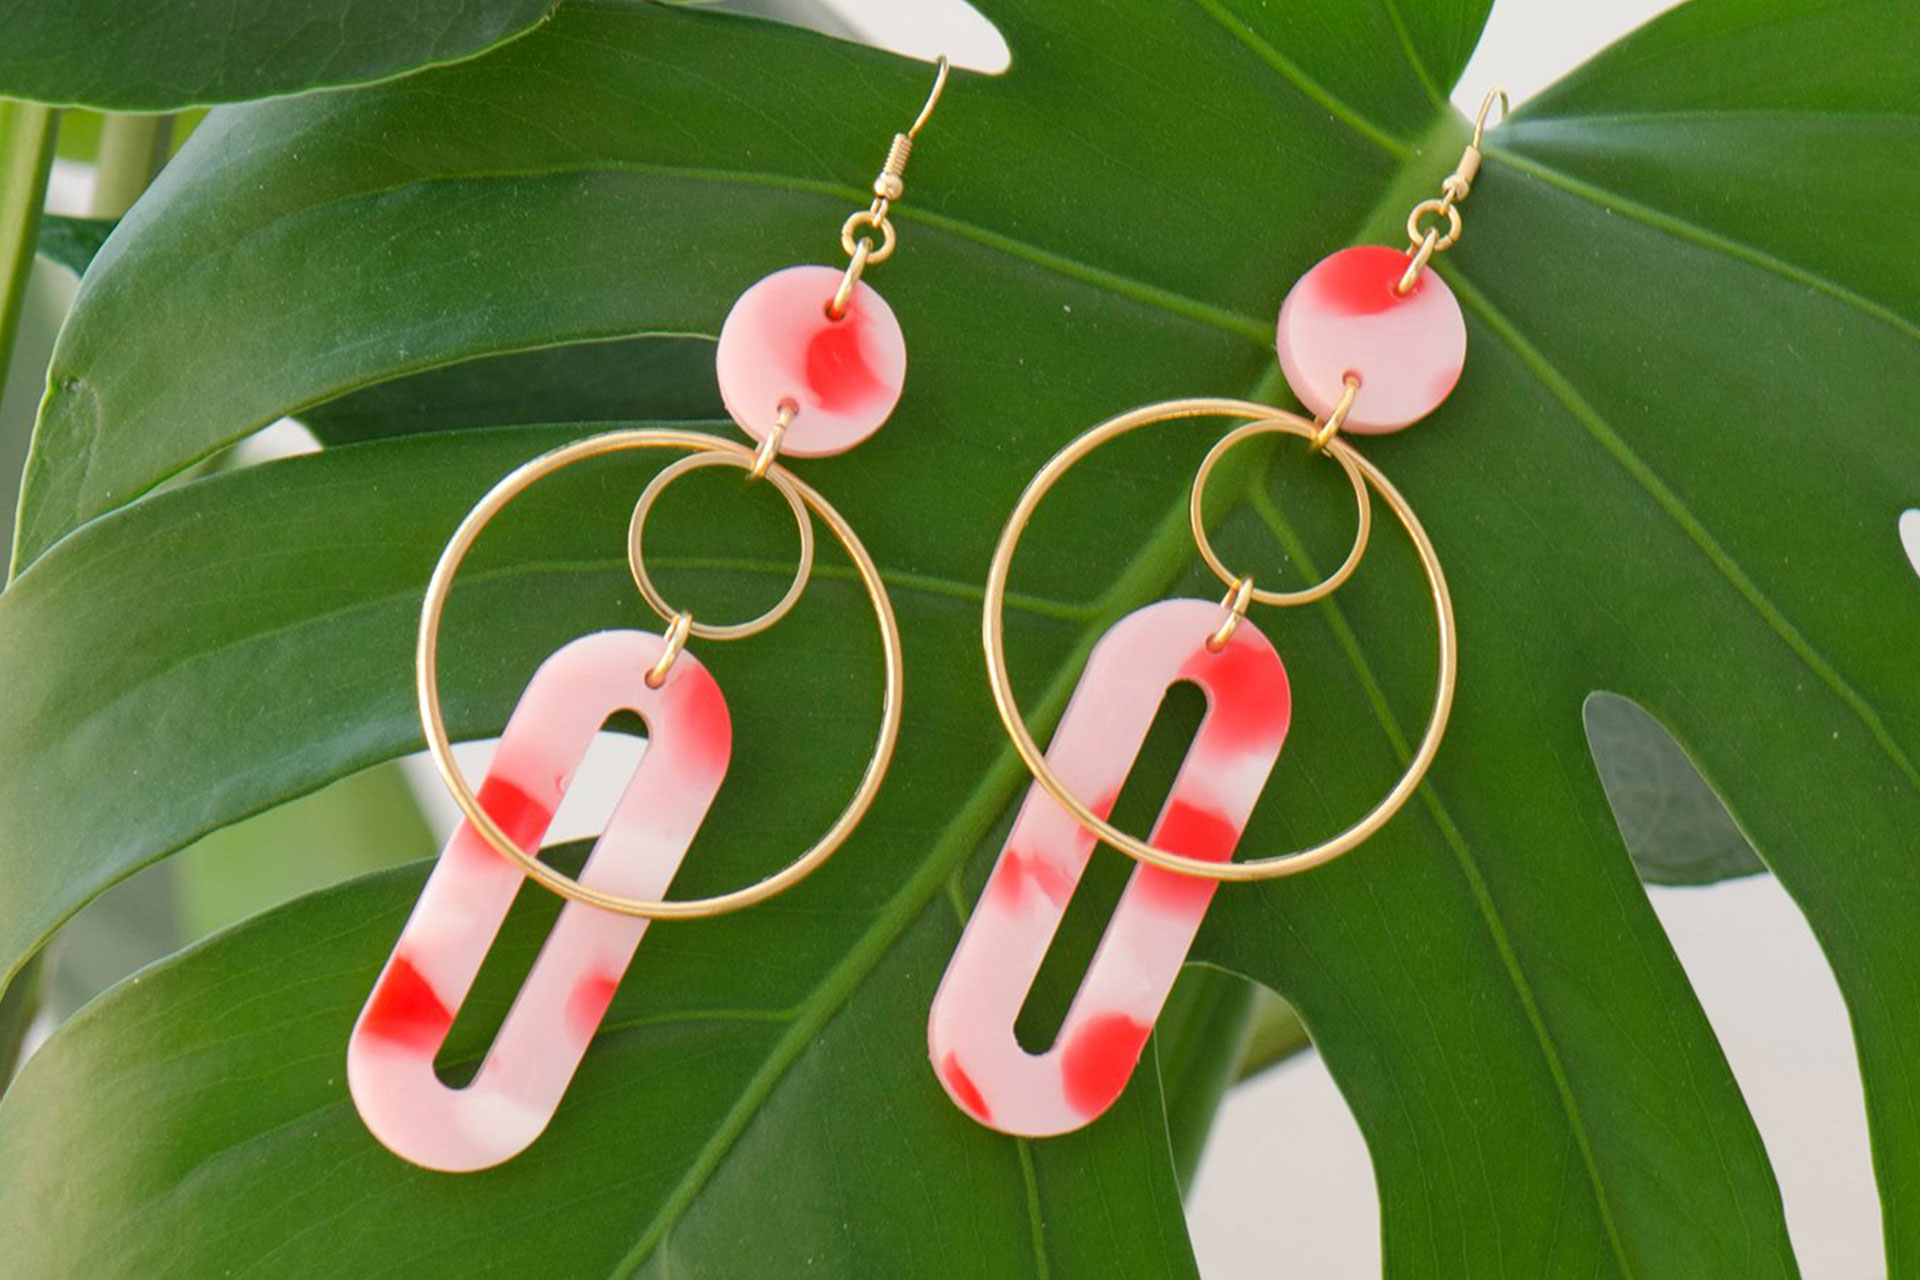 Earrings from recycled plastic